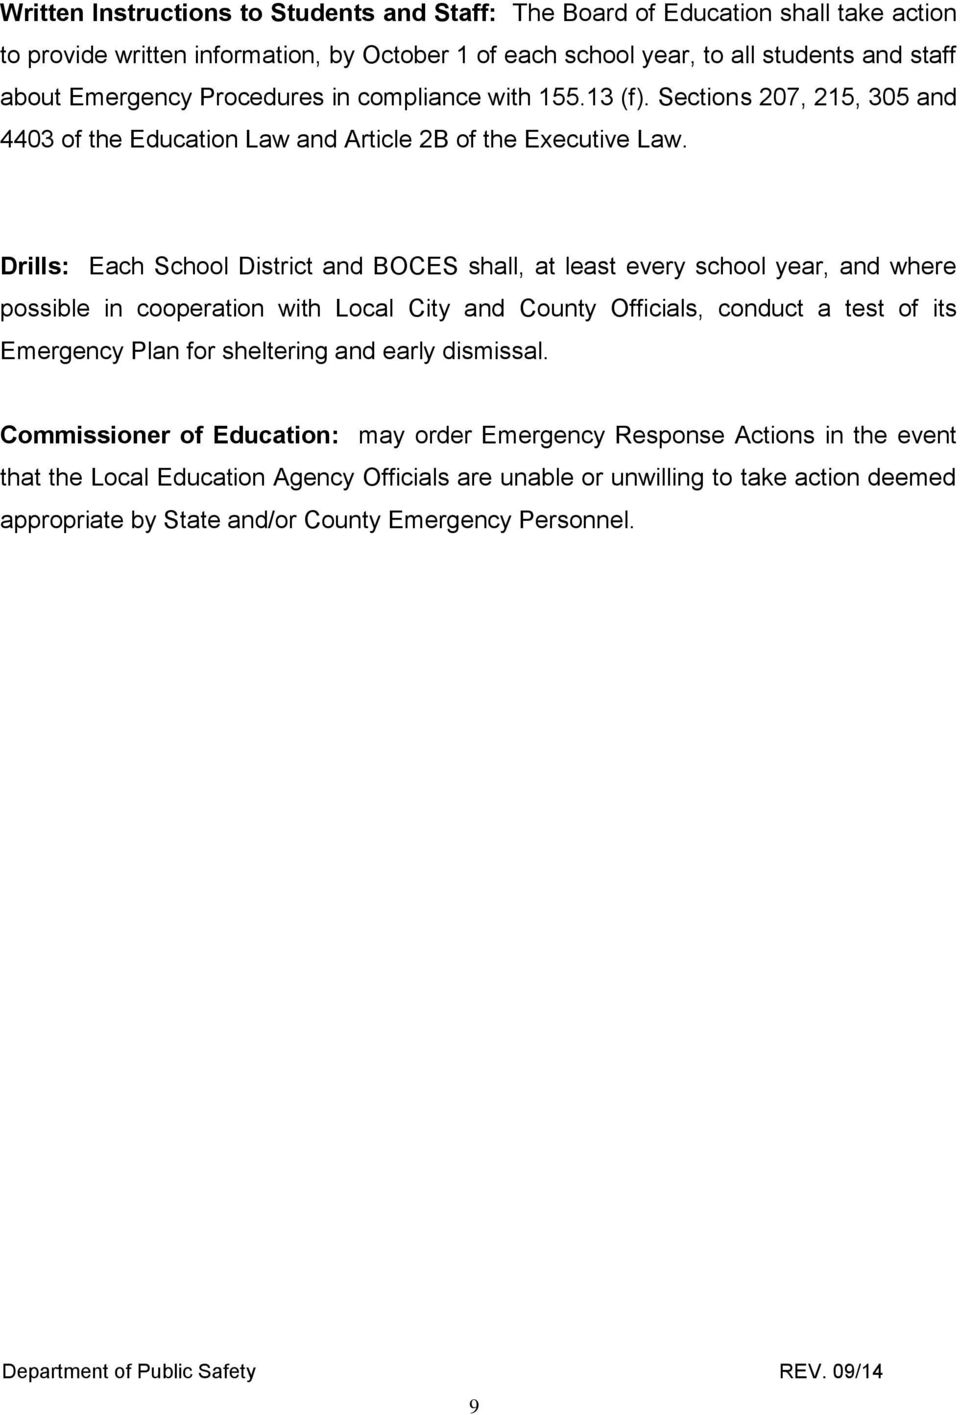 Drills: Each School District and BOCES shall, at least every school year, and where possible in cooperation with Local City and County Officials, conduct a test of its Emergency Plan for